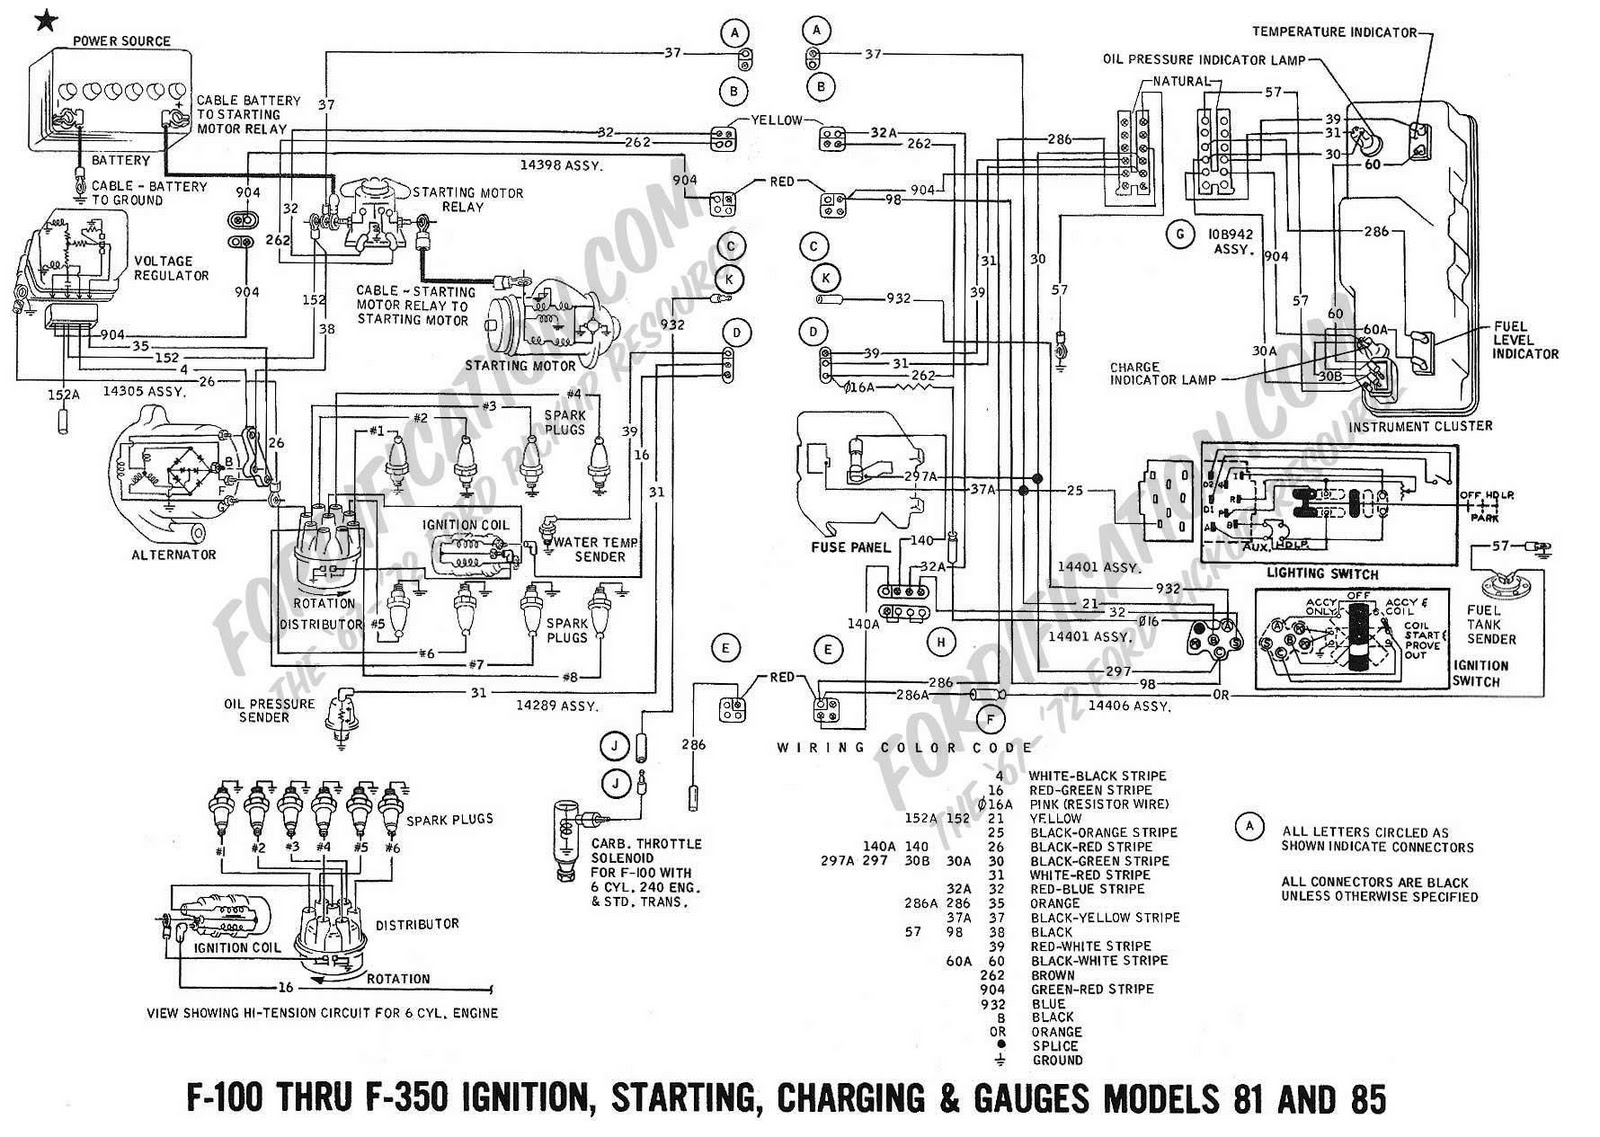 1977 ford pinto wiring diagram get free image about also ford 1977 ford pinto wiring diagram [ 1600 x 1137 Pixel ]